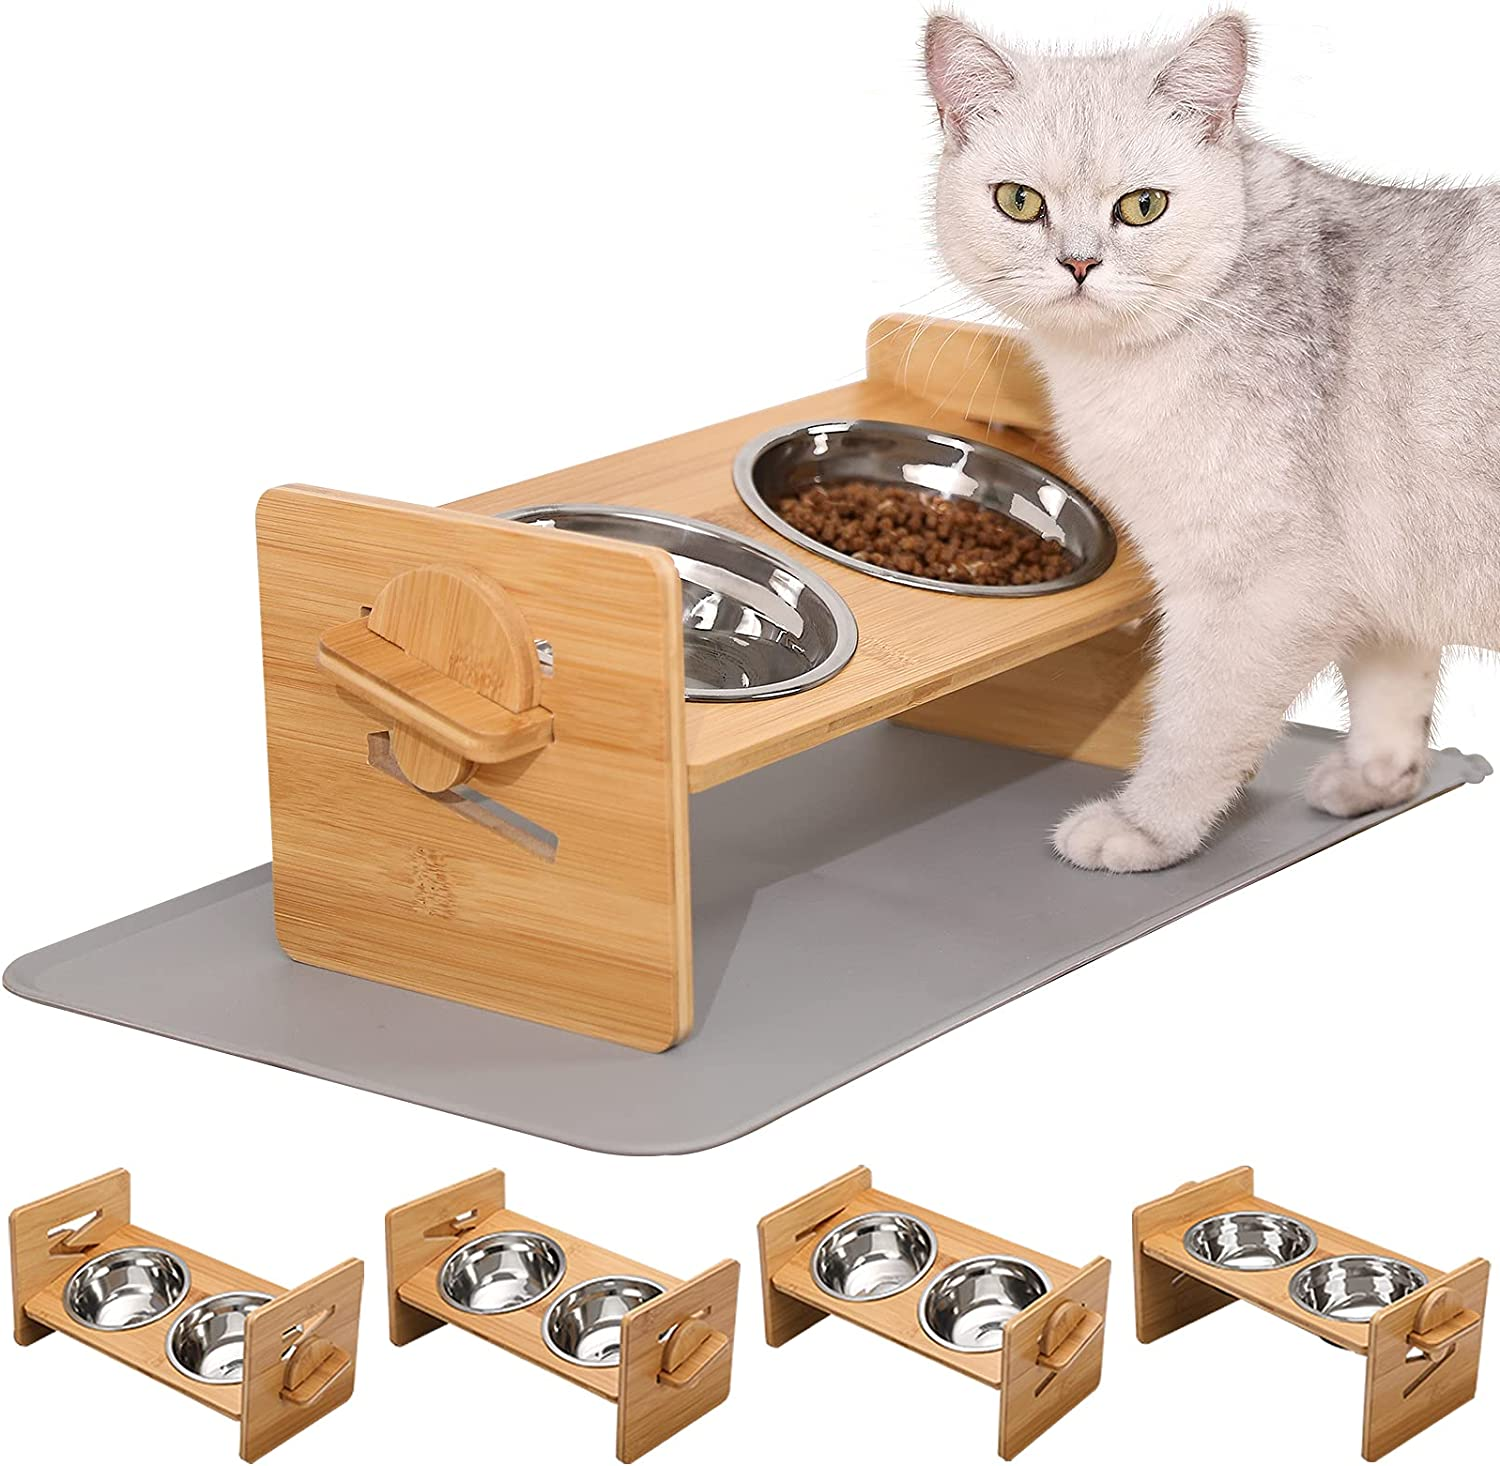 4 Heights - VALUCKEE Elevated Cat Bowls, 15° Tilted Raised Cat and Small Dog Food Water Bowls, Raised Pet Dish, Solid Bamboo Pet Stand Feeder Set, Pet Feeding Stainless Steel Bowls with Silicone Mat